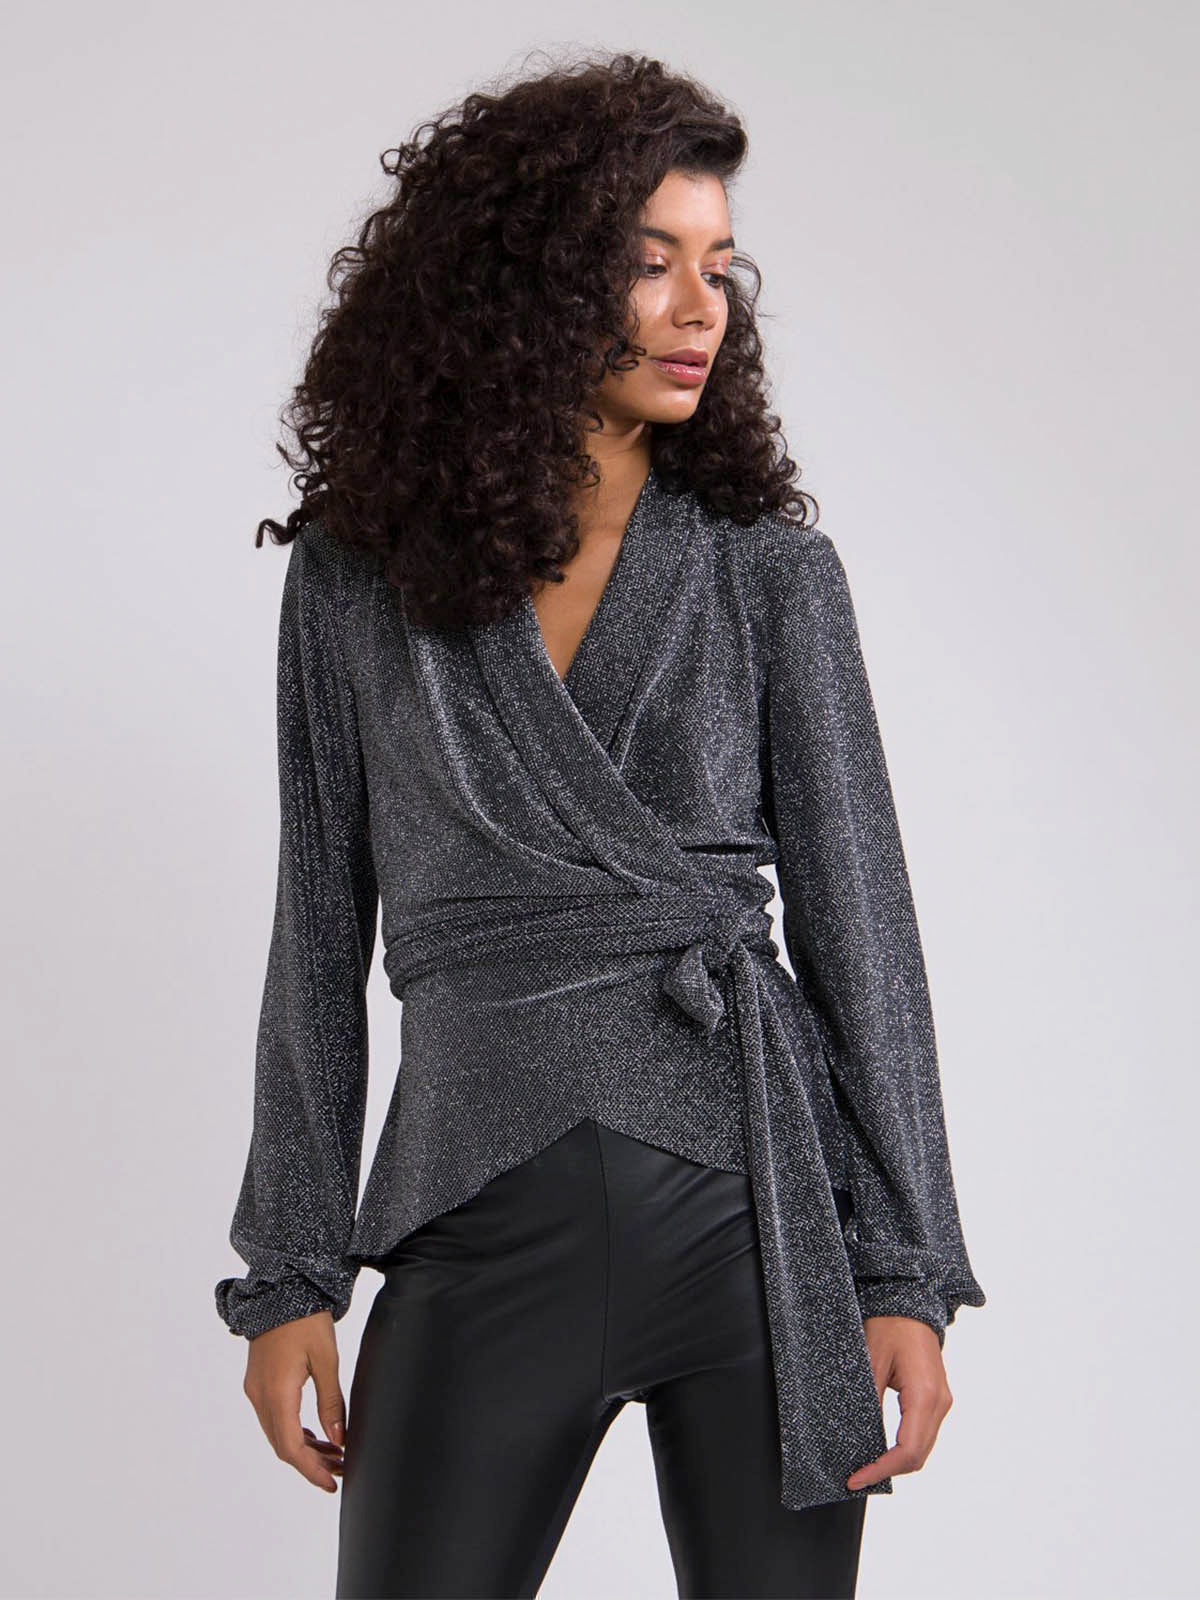 Metallic Mesh Wrap Top | Pewter Metallic Mesh Wrap Top | Pewter